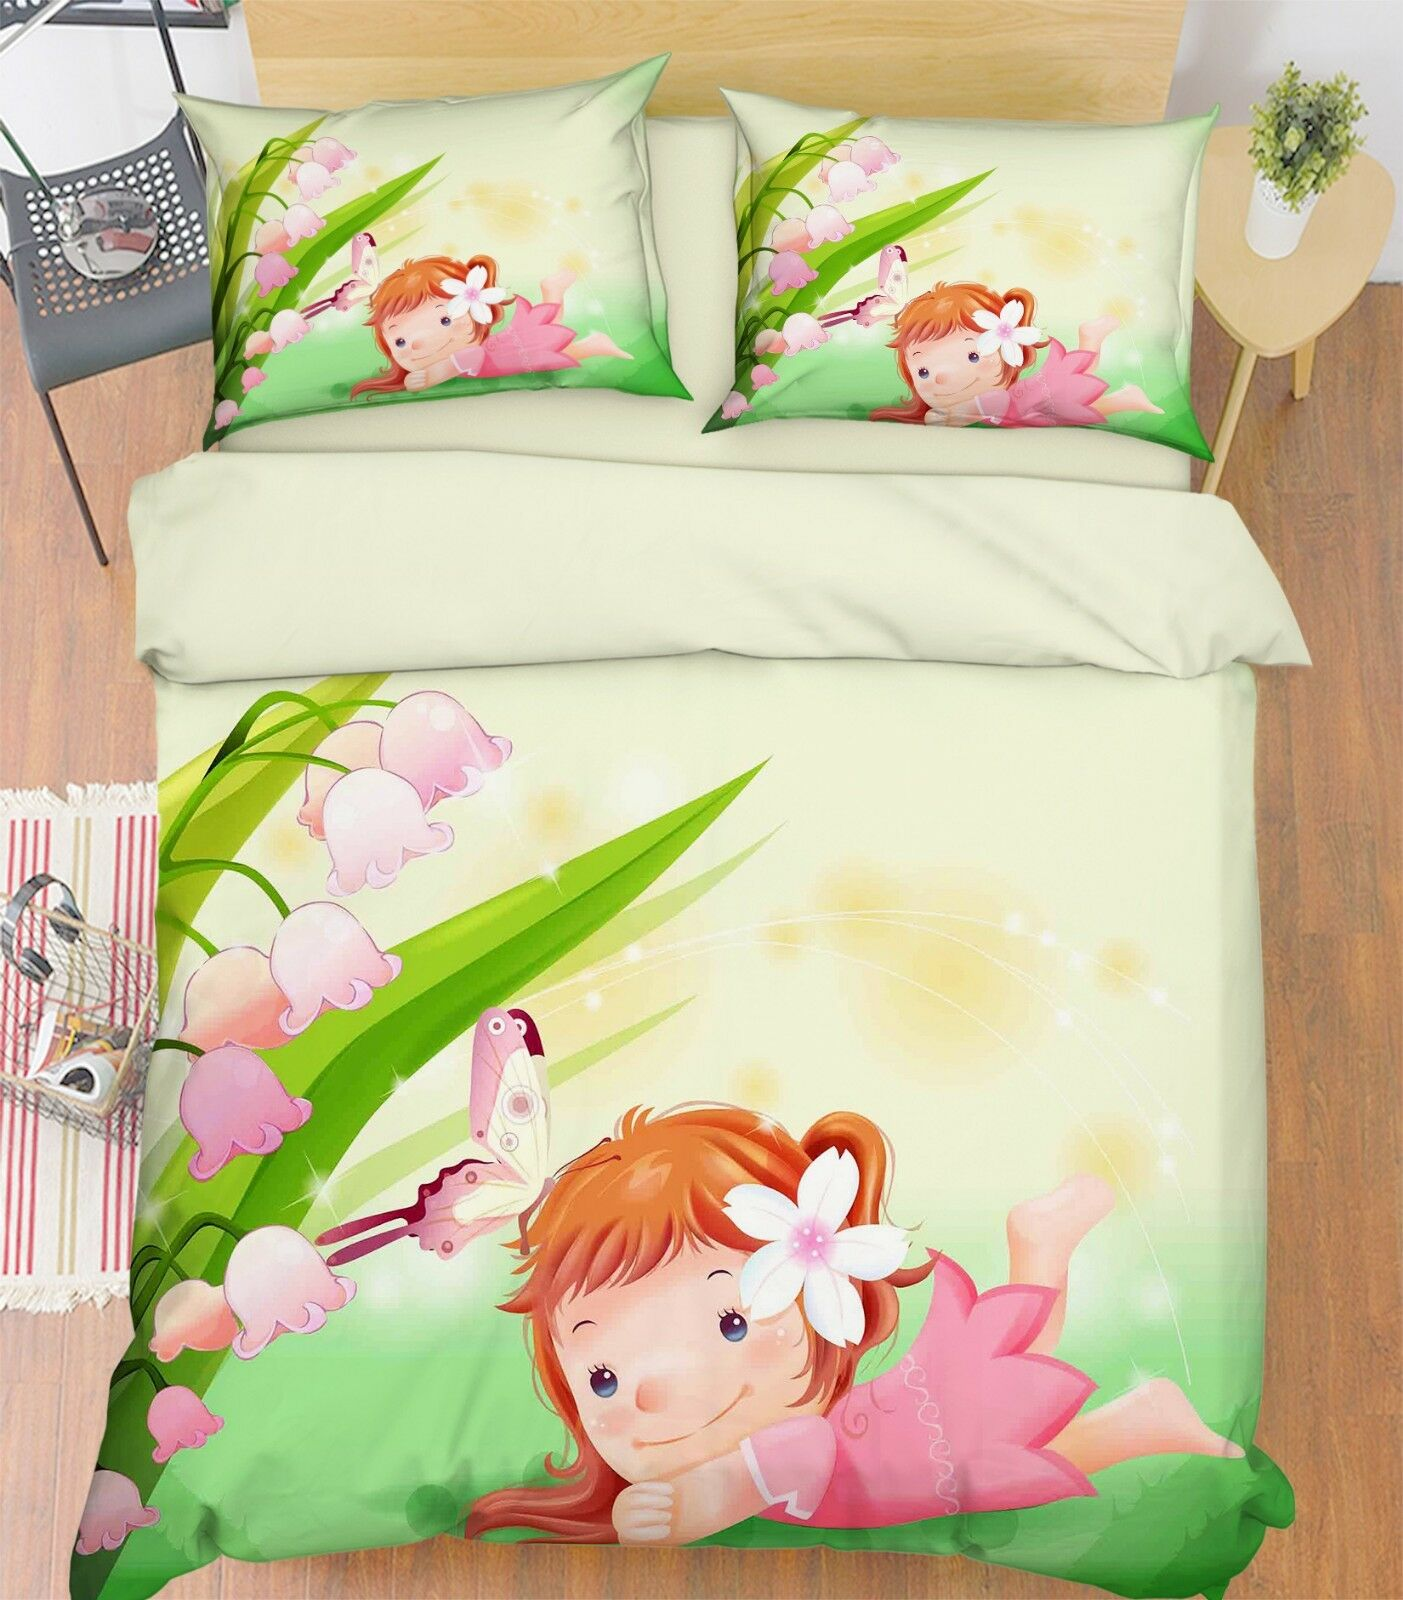 3D voituretoon Girl Leaf8 Bed PilFaiblecases Quilt Duvet Cover Set Single Queen King CA